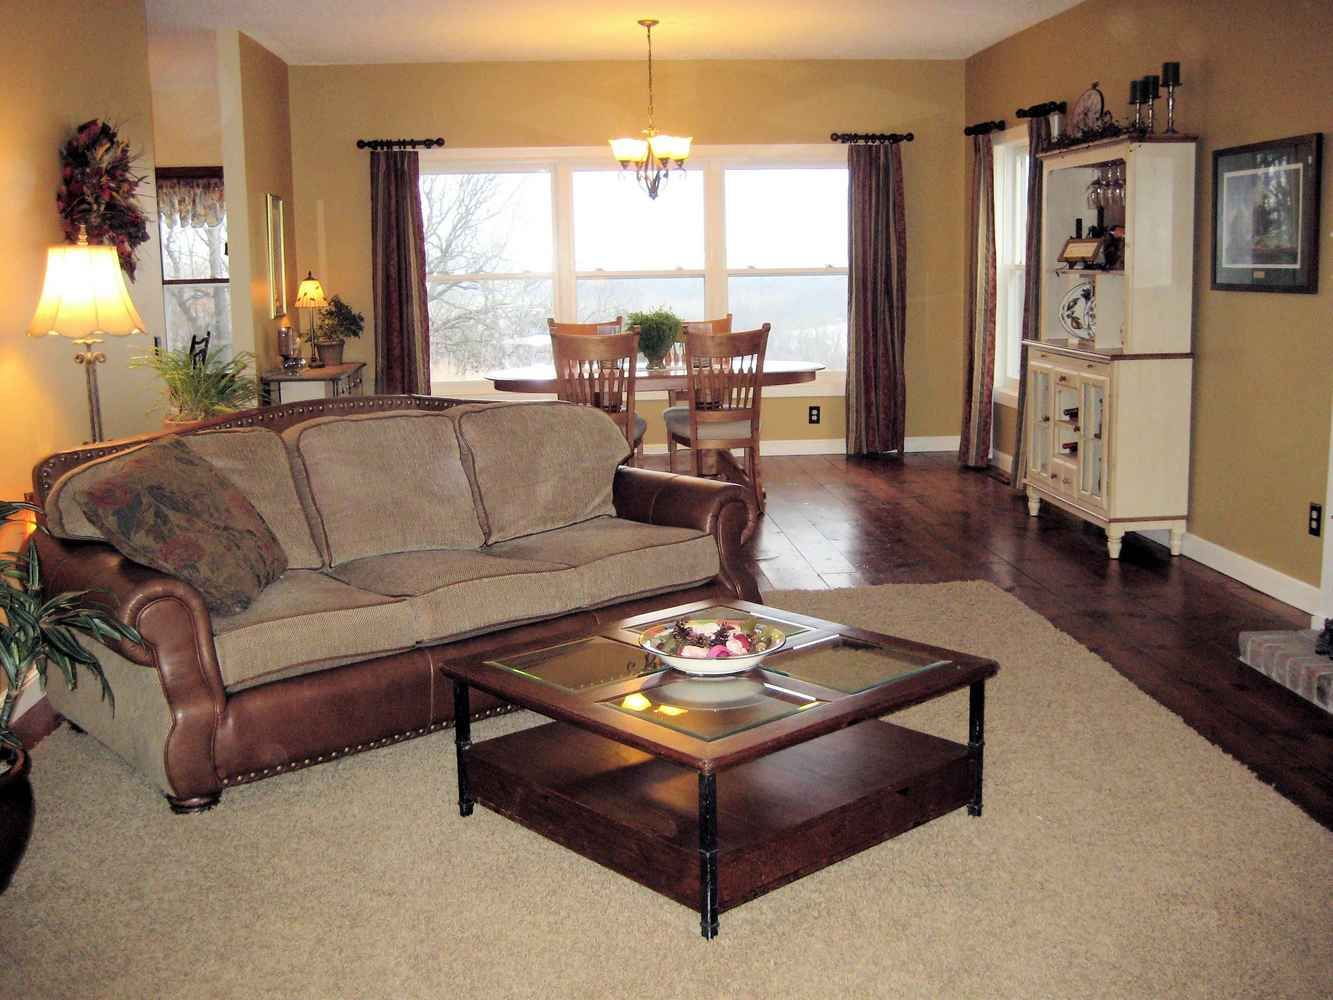 Small Living Room Limited Space Of The House With Living Room And